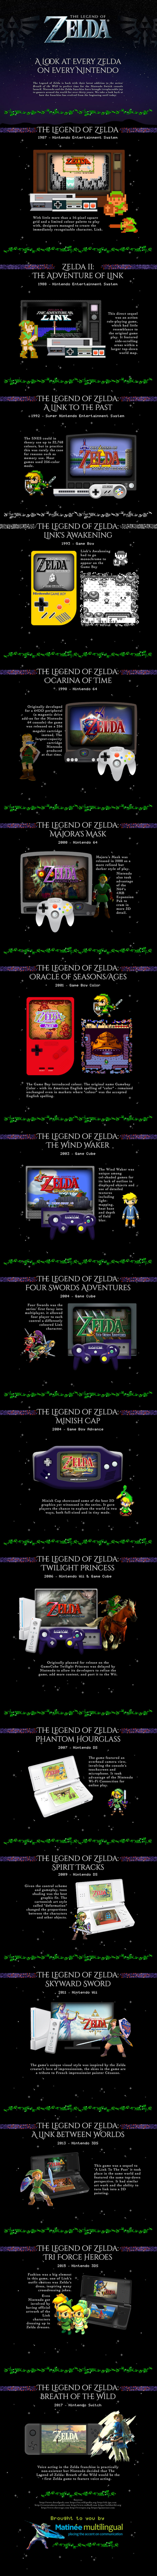 A Look at Every Zelda on Every Nintendo by Matinee Multilingual